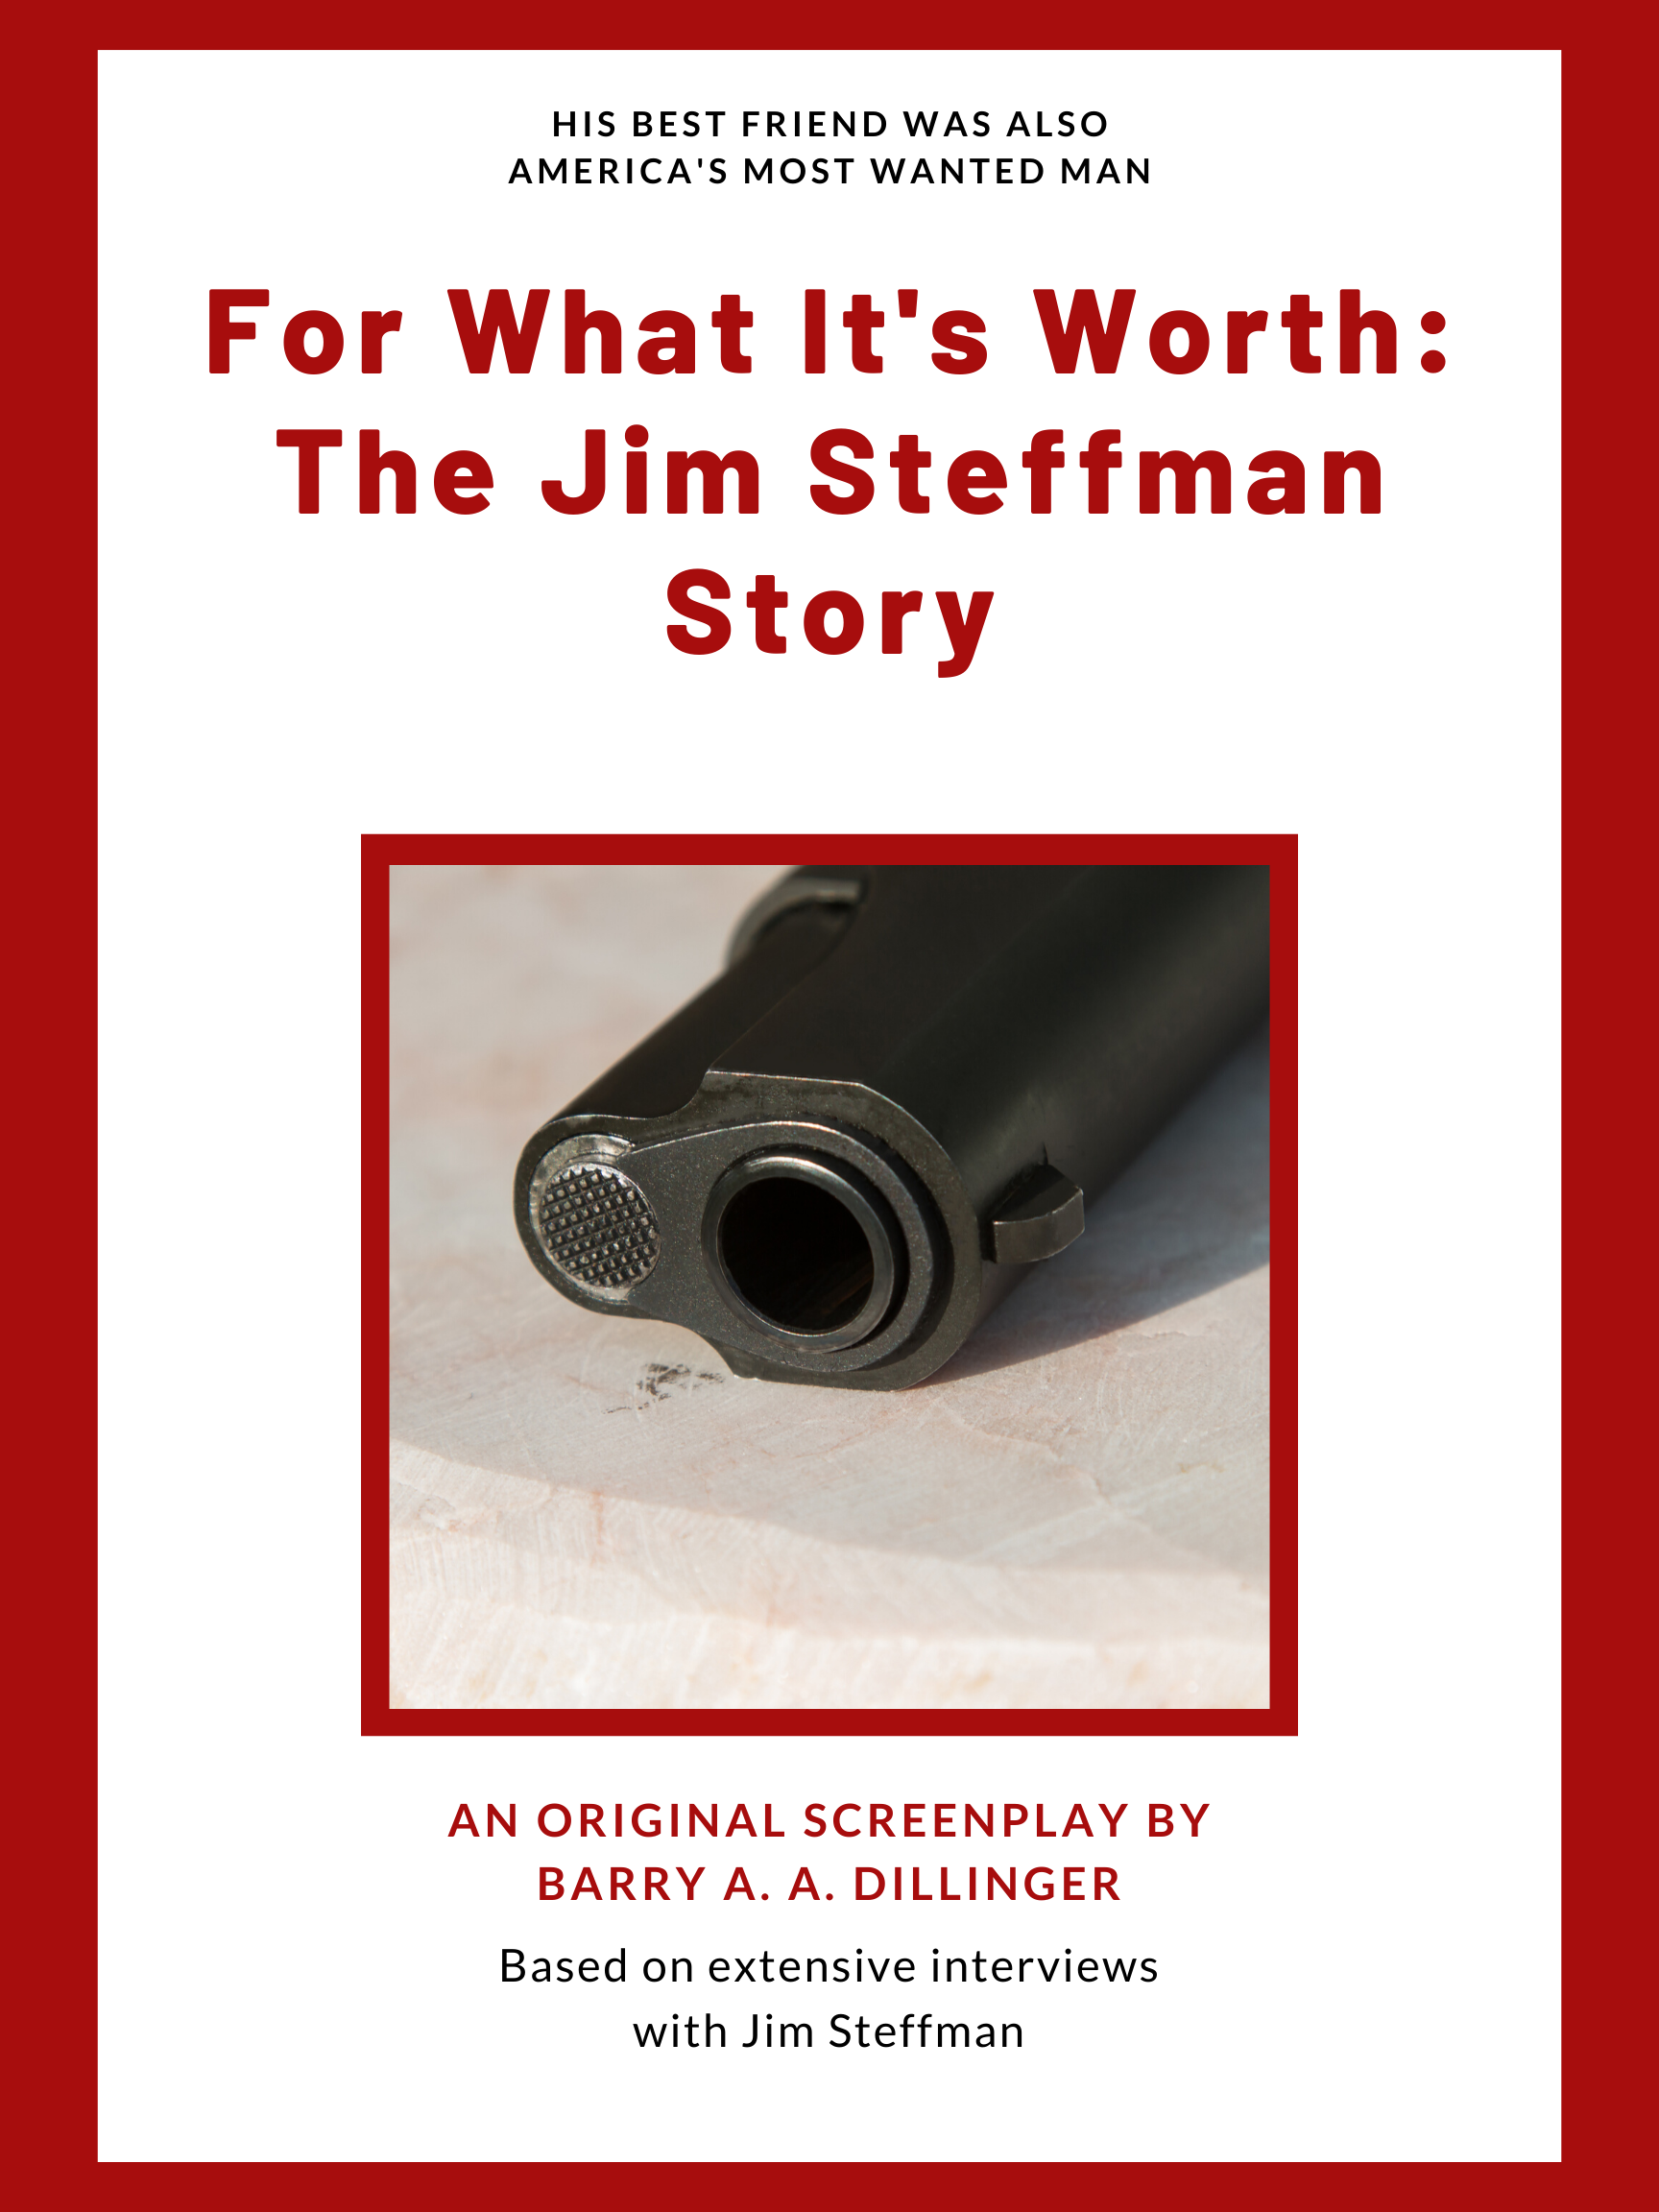 FOR WHAT IT'S WORTH: THE JIM STEFFMAN STORY